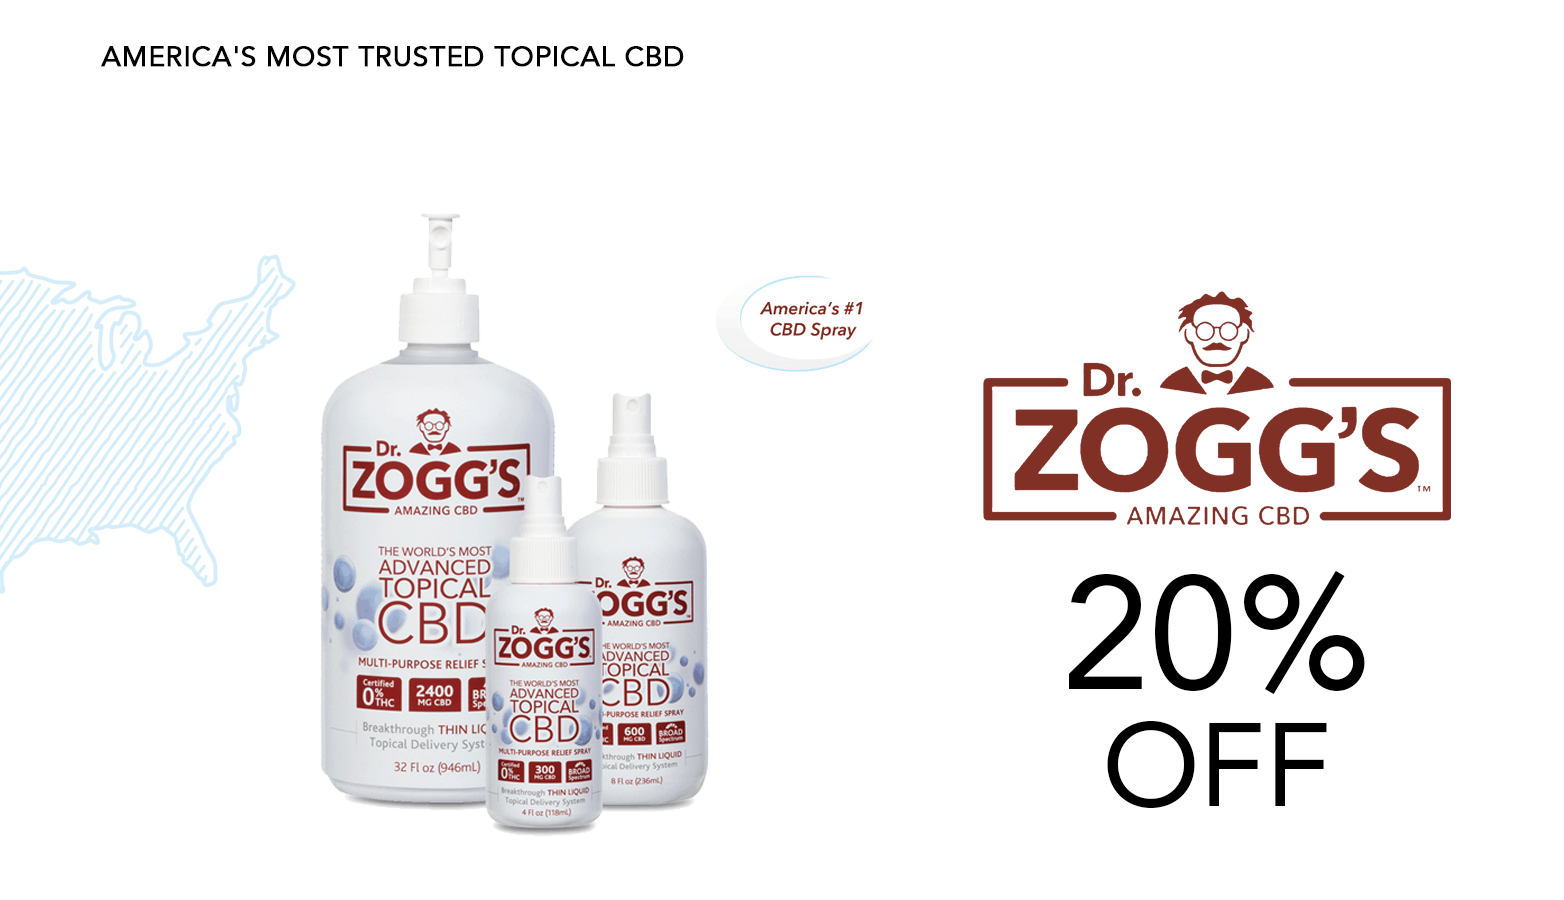 Dr. Zoggs Amazing CBD Coupon Code Offer Website